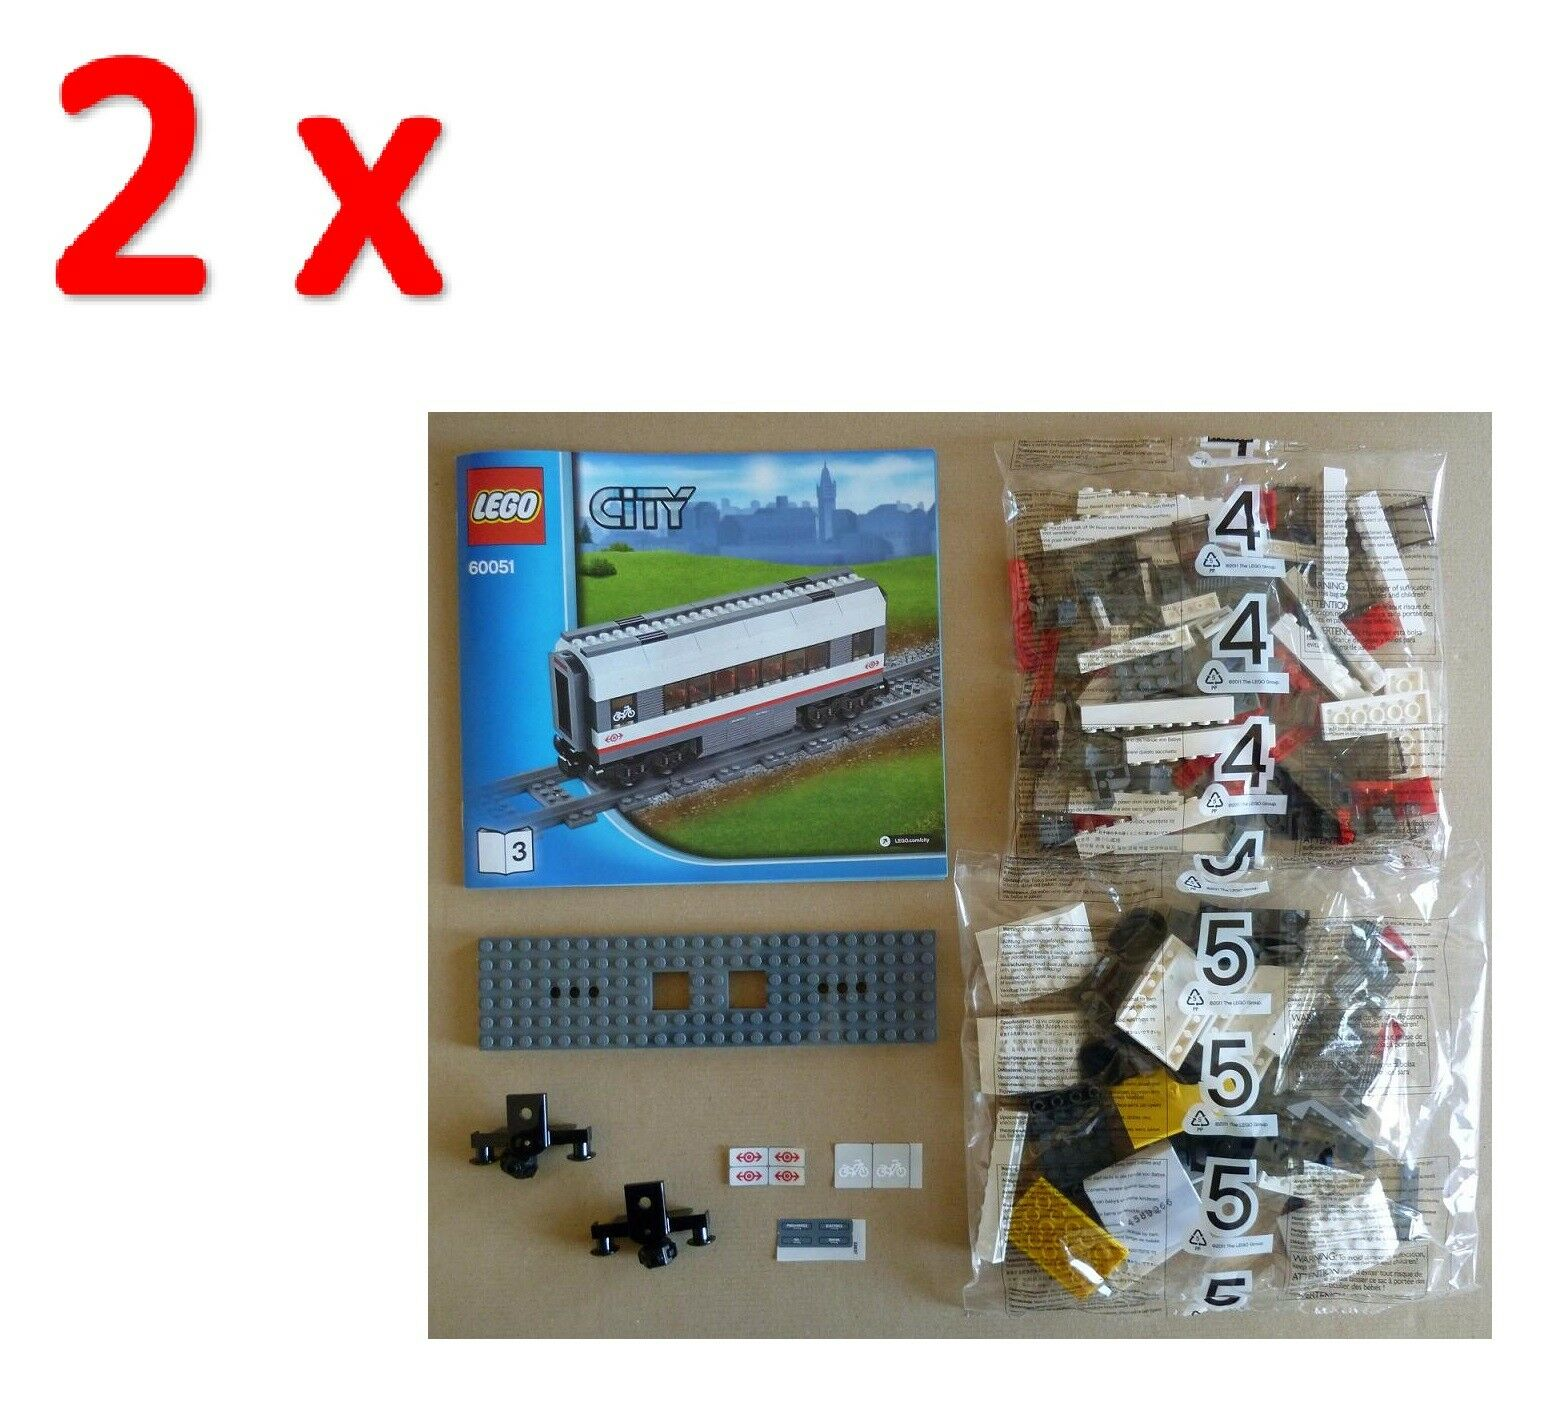 LEGO Train - Lotto 2 Vagoni Intermedi Passeggeri - da 60051 - SIGILLATI 60052